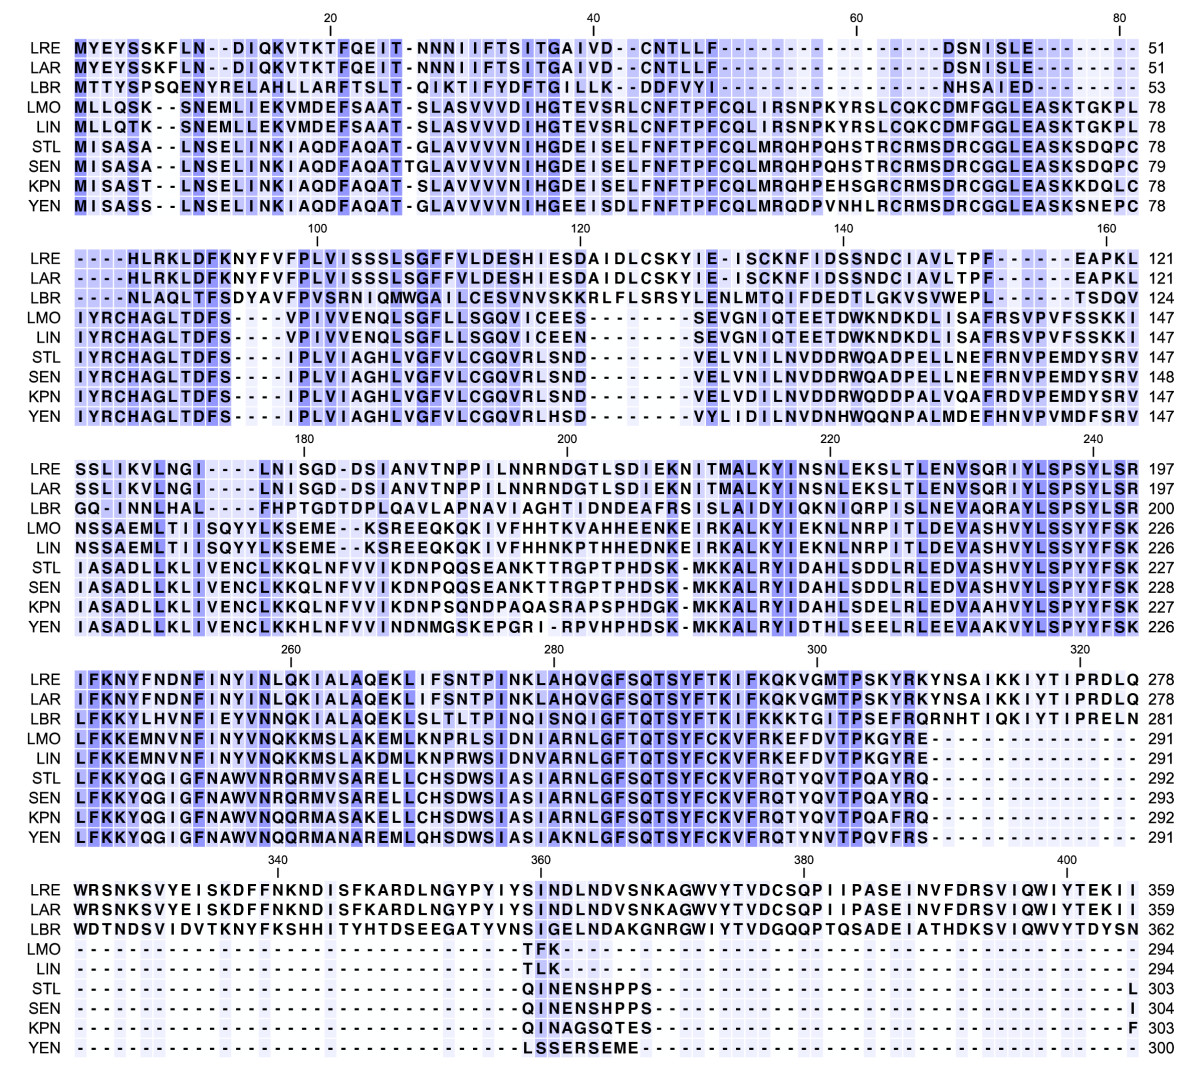 https://static-content.springer.com/image/art%3A10.1186%2F1475-2859-10-55/MediaObjects/12934_2011_Article_548_Fig1_HTML.jpg